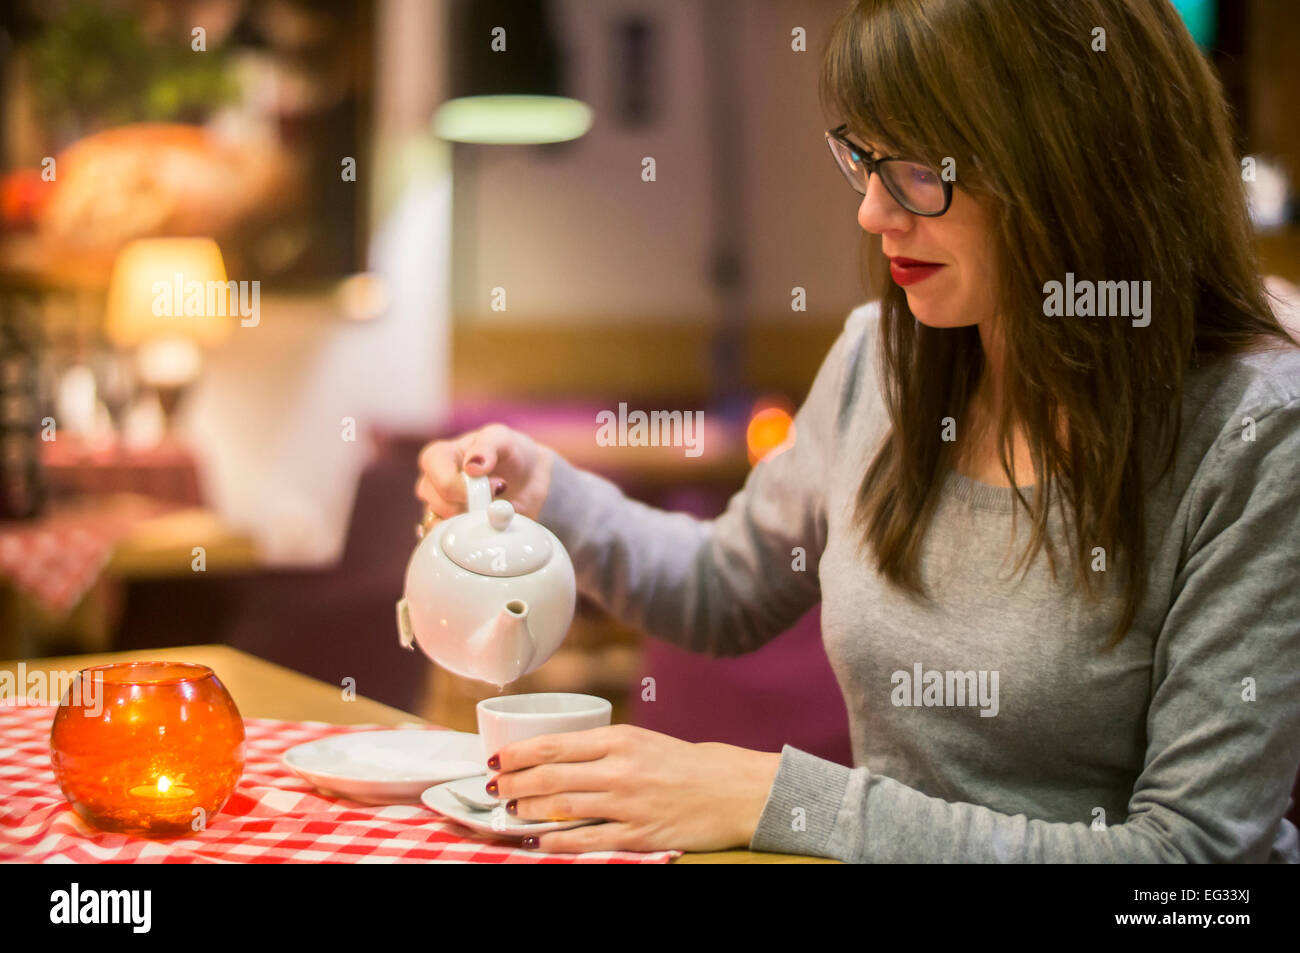 Beautiful young woman enjoying a hot drink with friends in a cosy cafe. - Stock Image